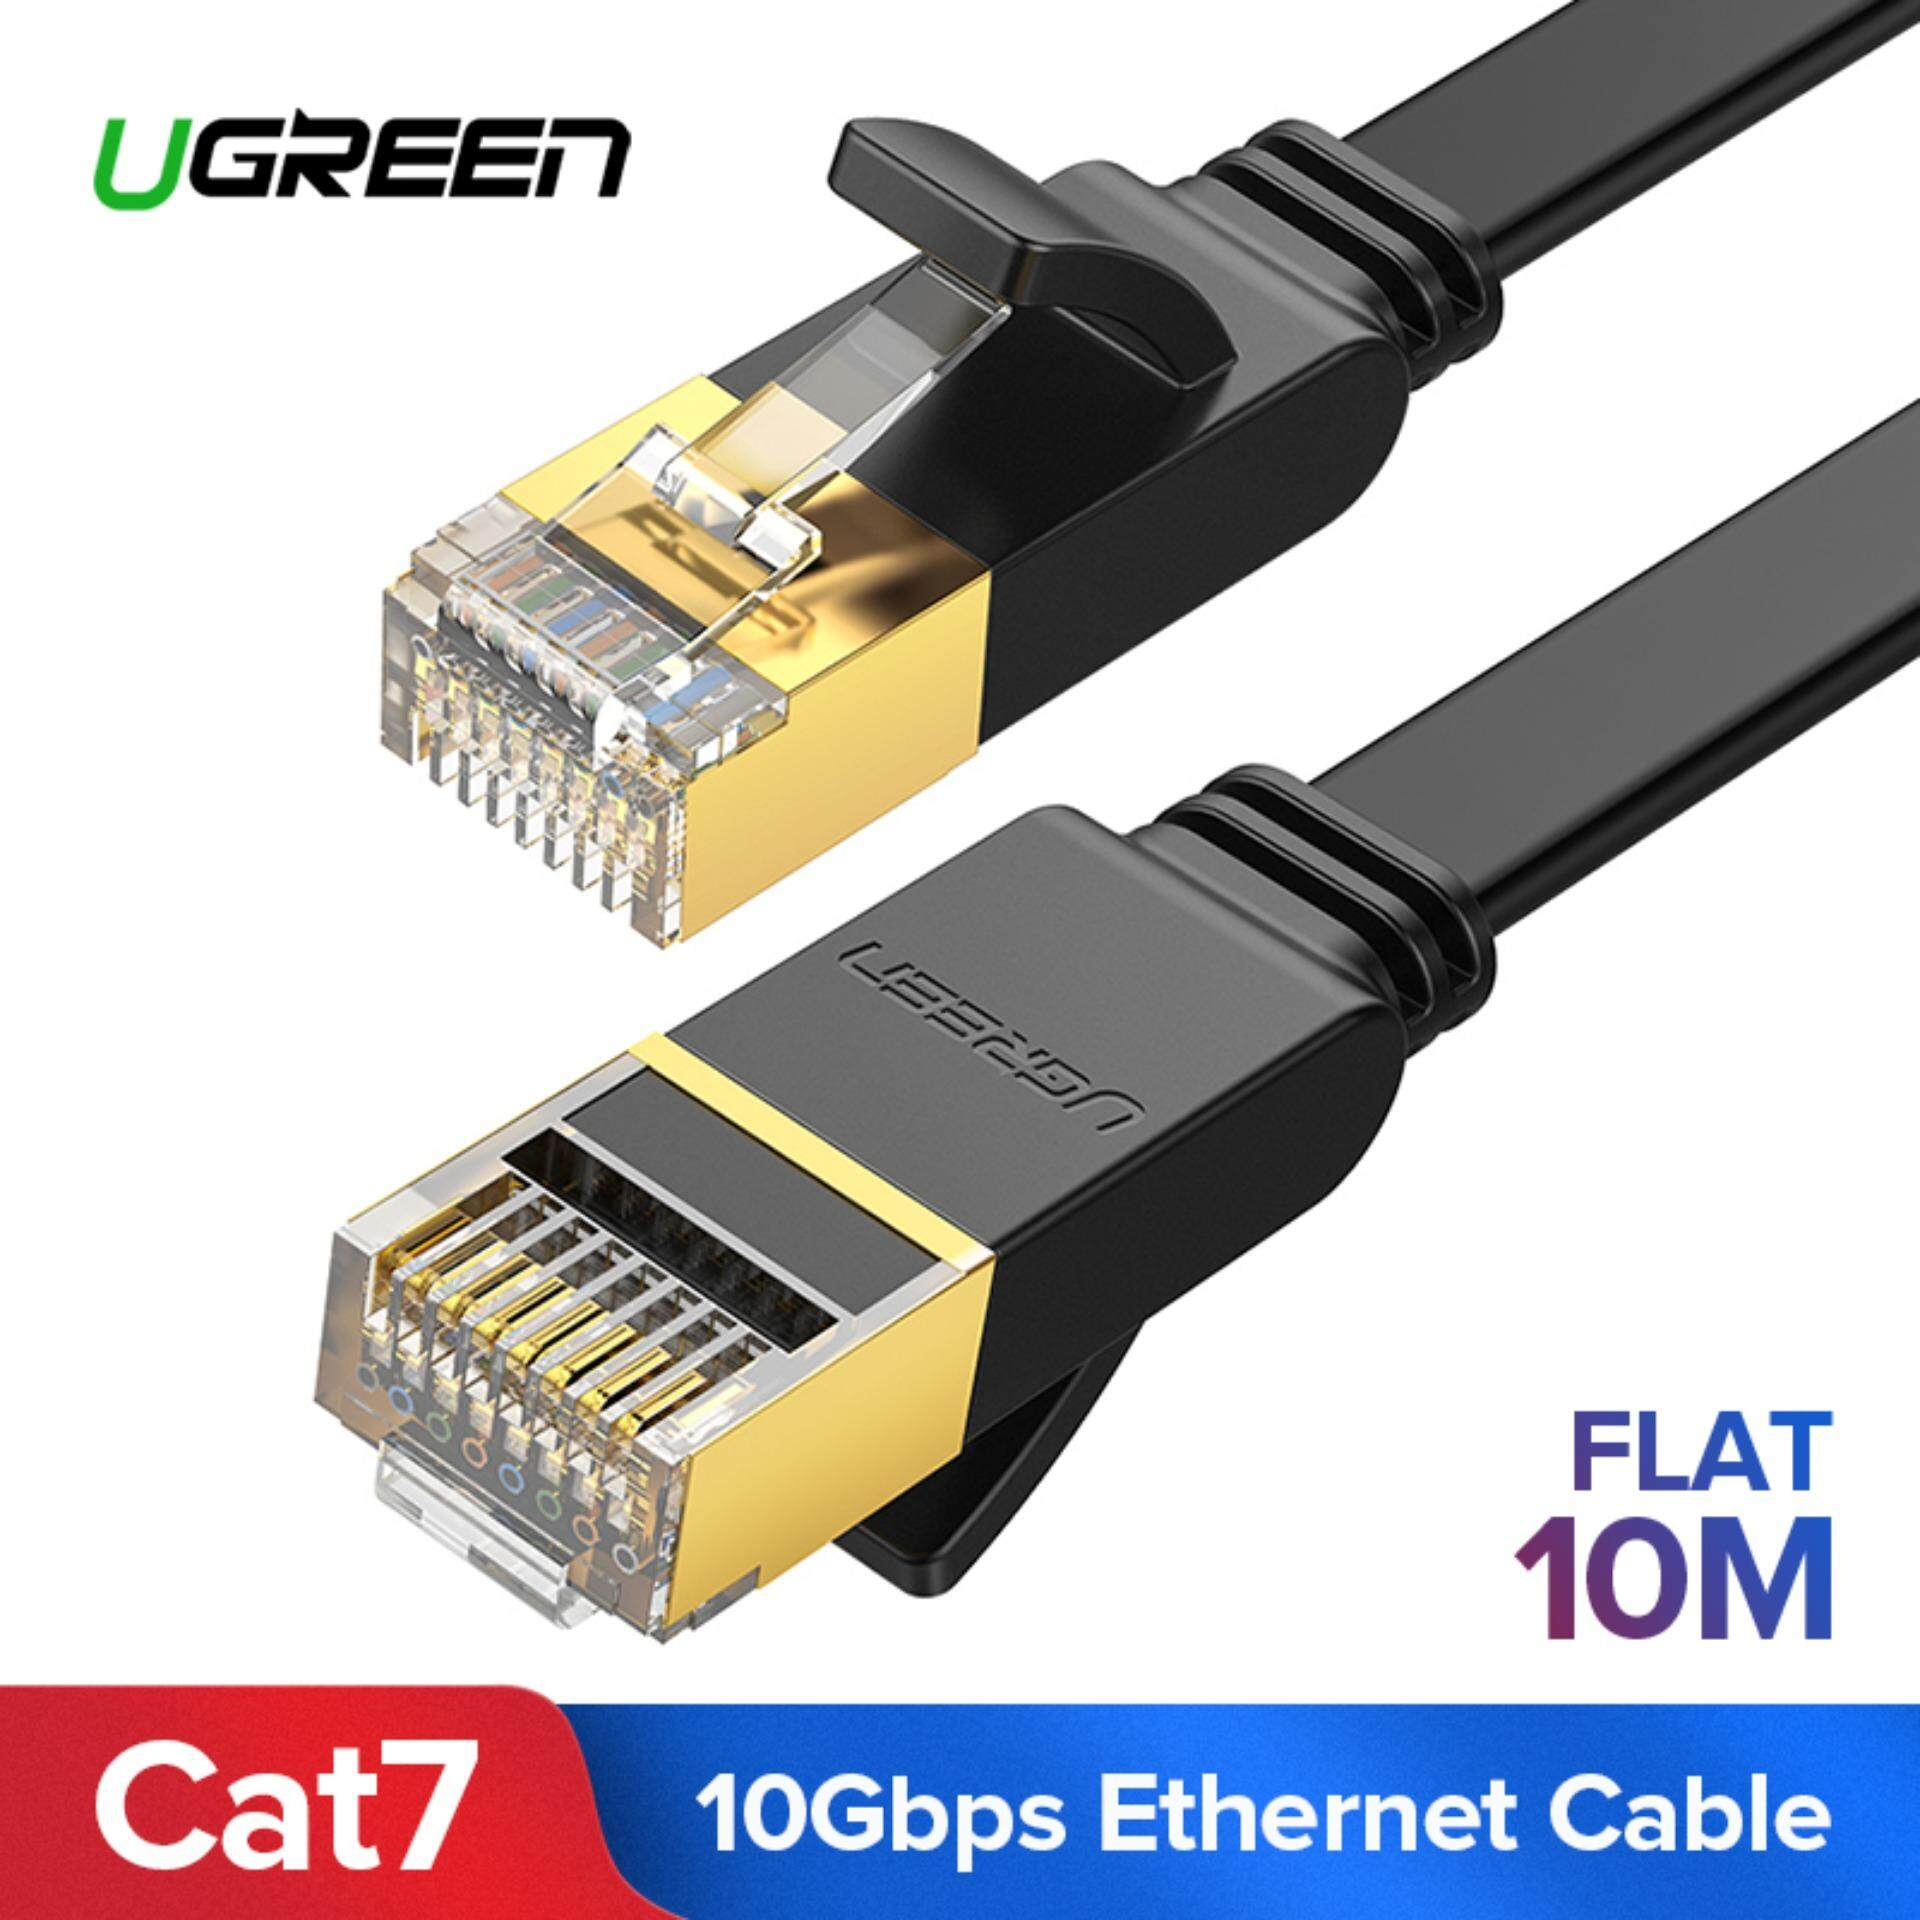 Coax Kabel 7 Meter Ugreen 10 Meter Flat Ethernet Cable Cat7 Rj45 Network Patch Cable Flat 10 Gigabit 600mhz Lan Wire Cable Cord Shielded For Modem Router Pc Mac